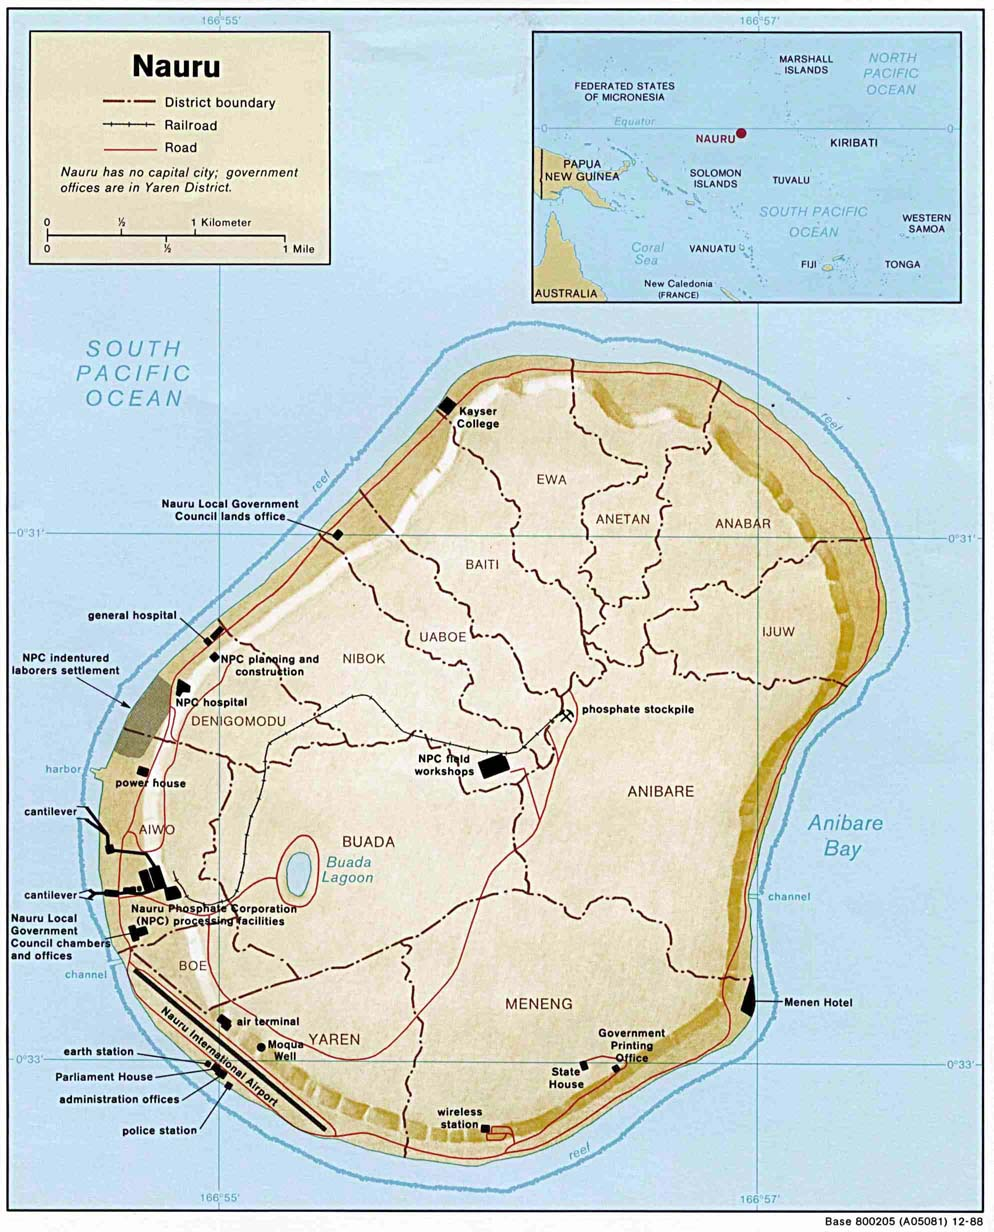 Nauru street map images diagram writing sample ideas and guide nauru street map sciox Image collections